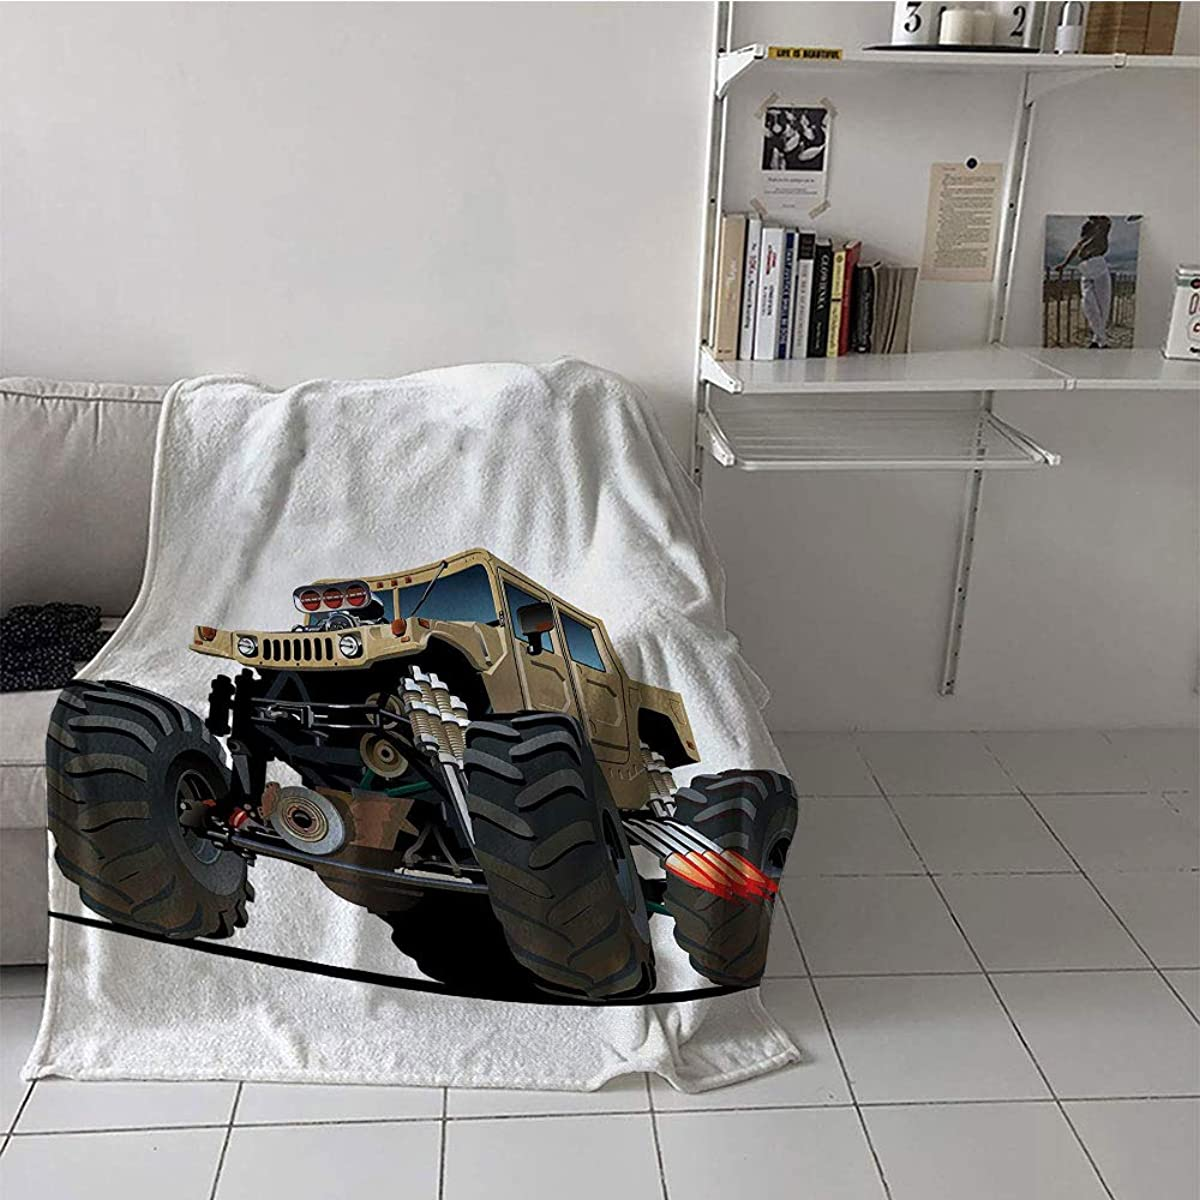 Khaki home Children's Blanket Room/Bedroom Plush Throw Blanket (50 by 70 Inch,Cars,Extremely Large Giant Monster Pickup Truck with Huge with Oversized Tires Race Illustration,Multi